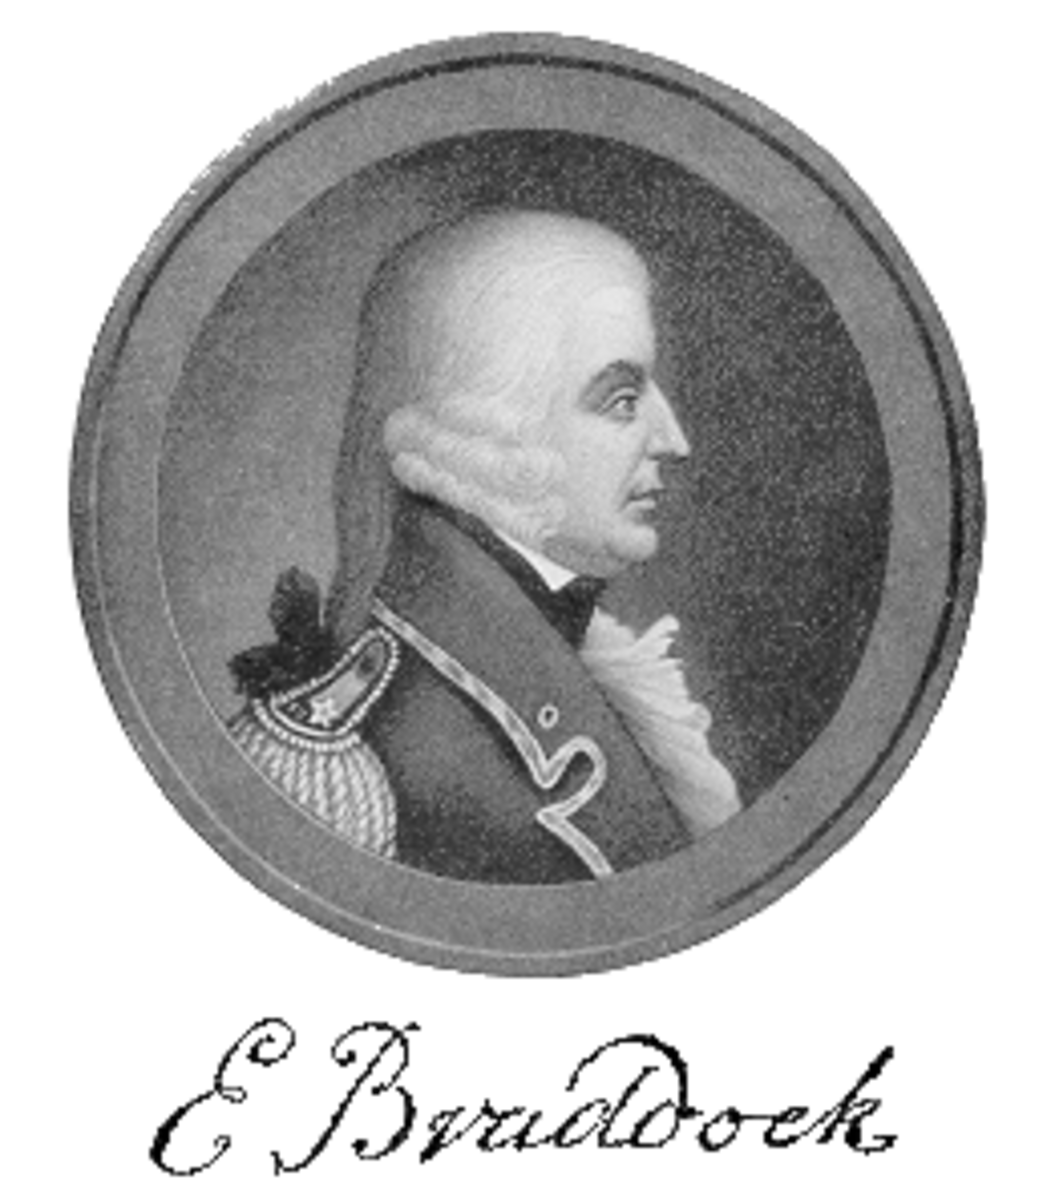 General Edward Braddock.  Washington was serving as an aide to the British officer at the Battle of the Monongahela, when Braddock was mortally wounded by French troops with their Indian allies.